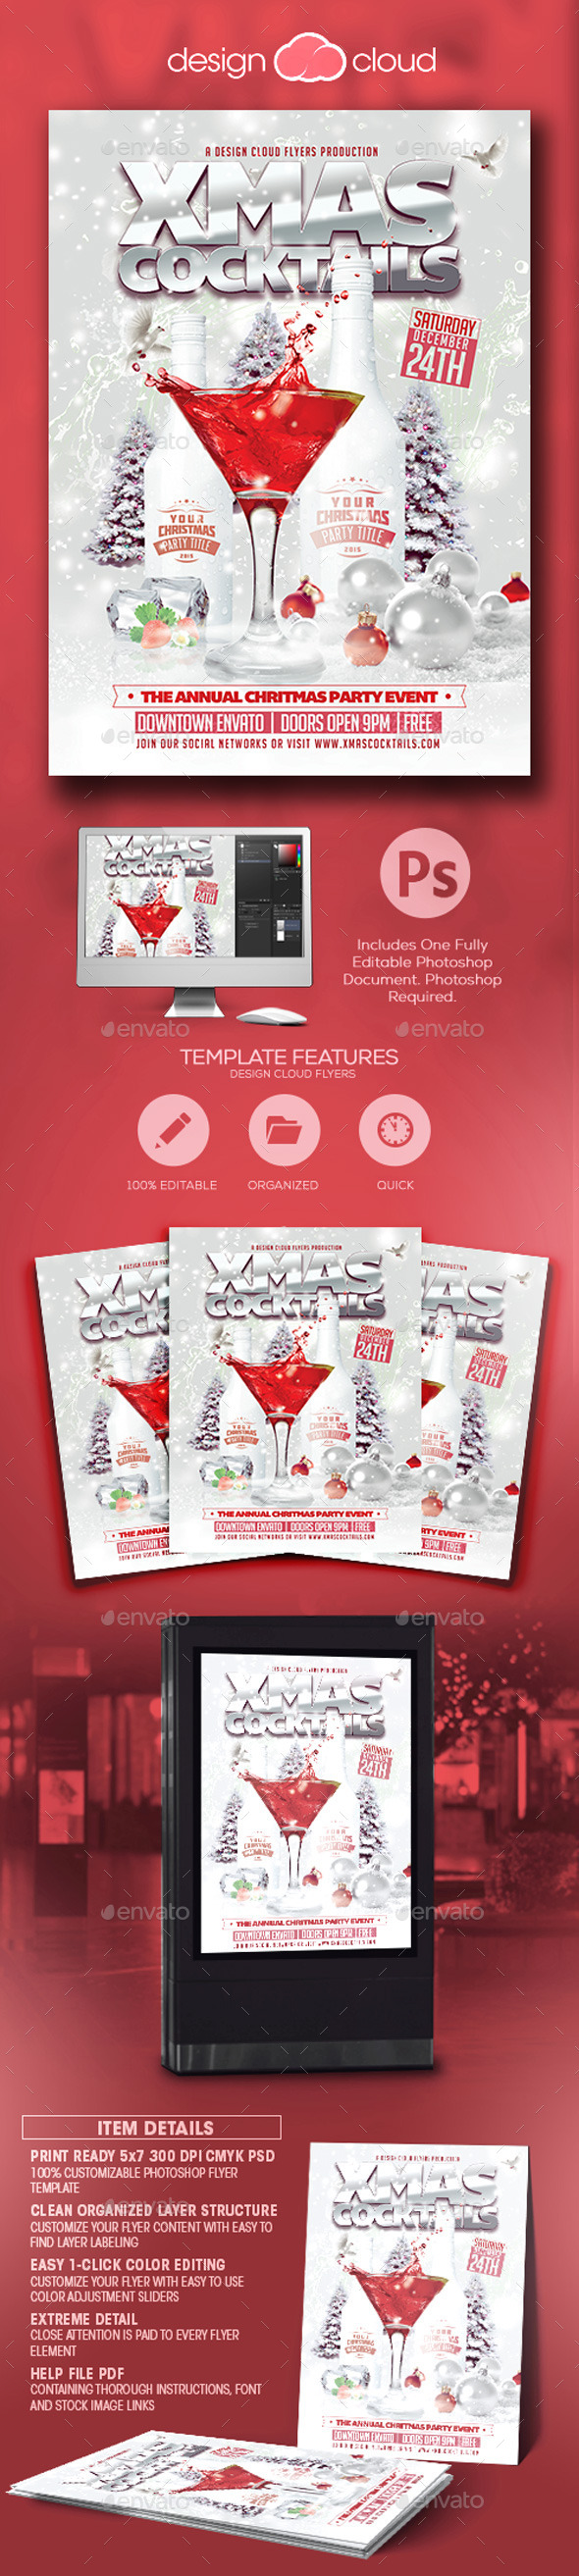 White Christmas Cocktail Party Flyer Template - Holidays Events